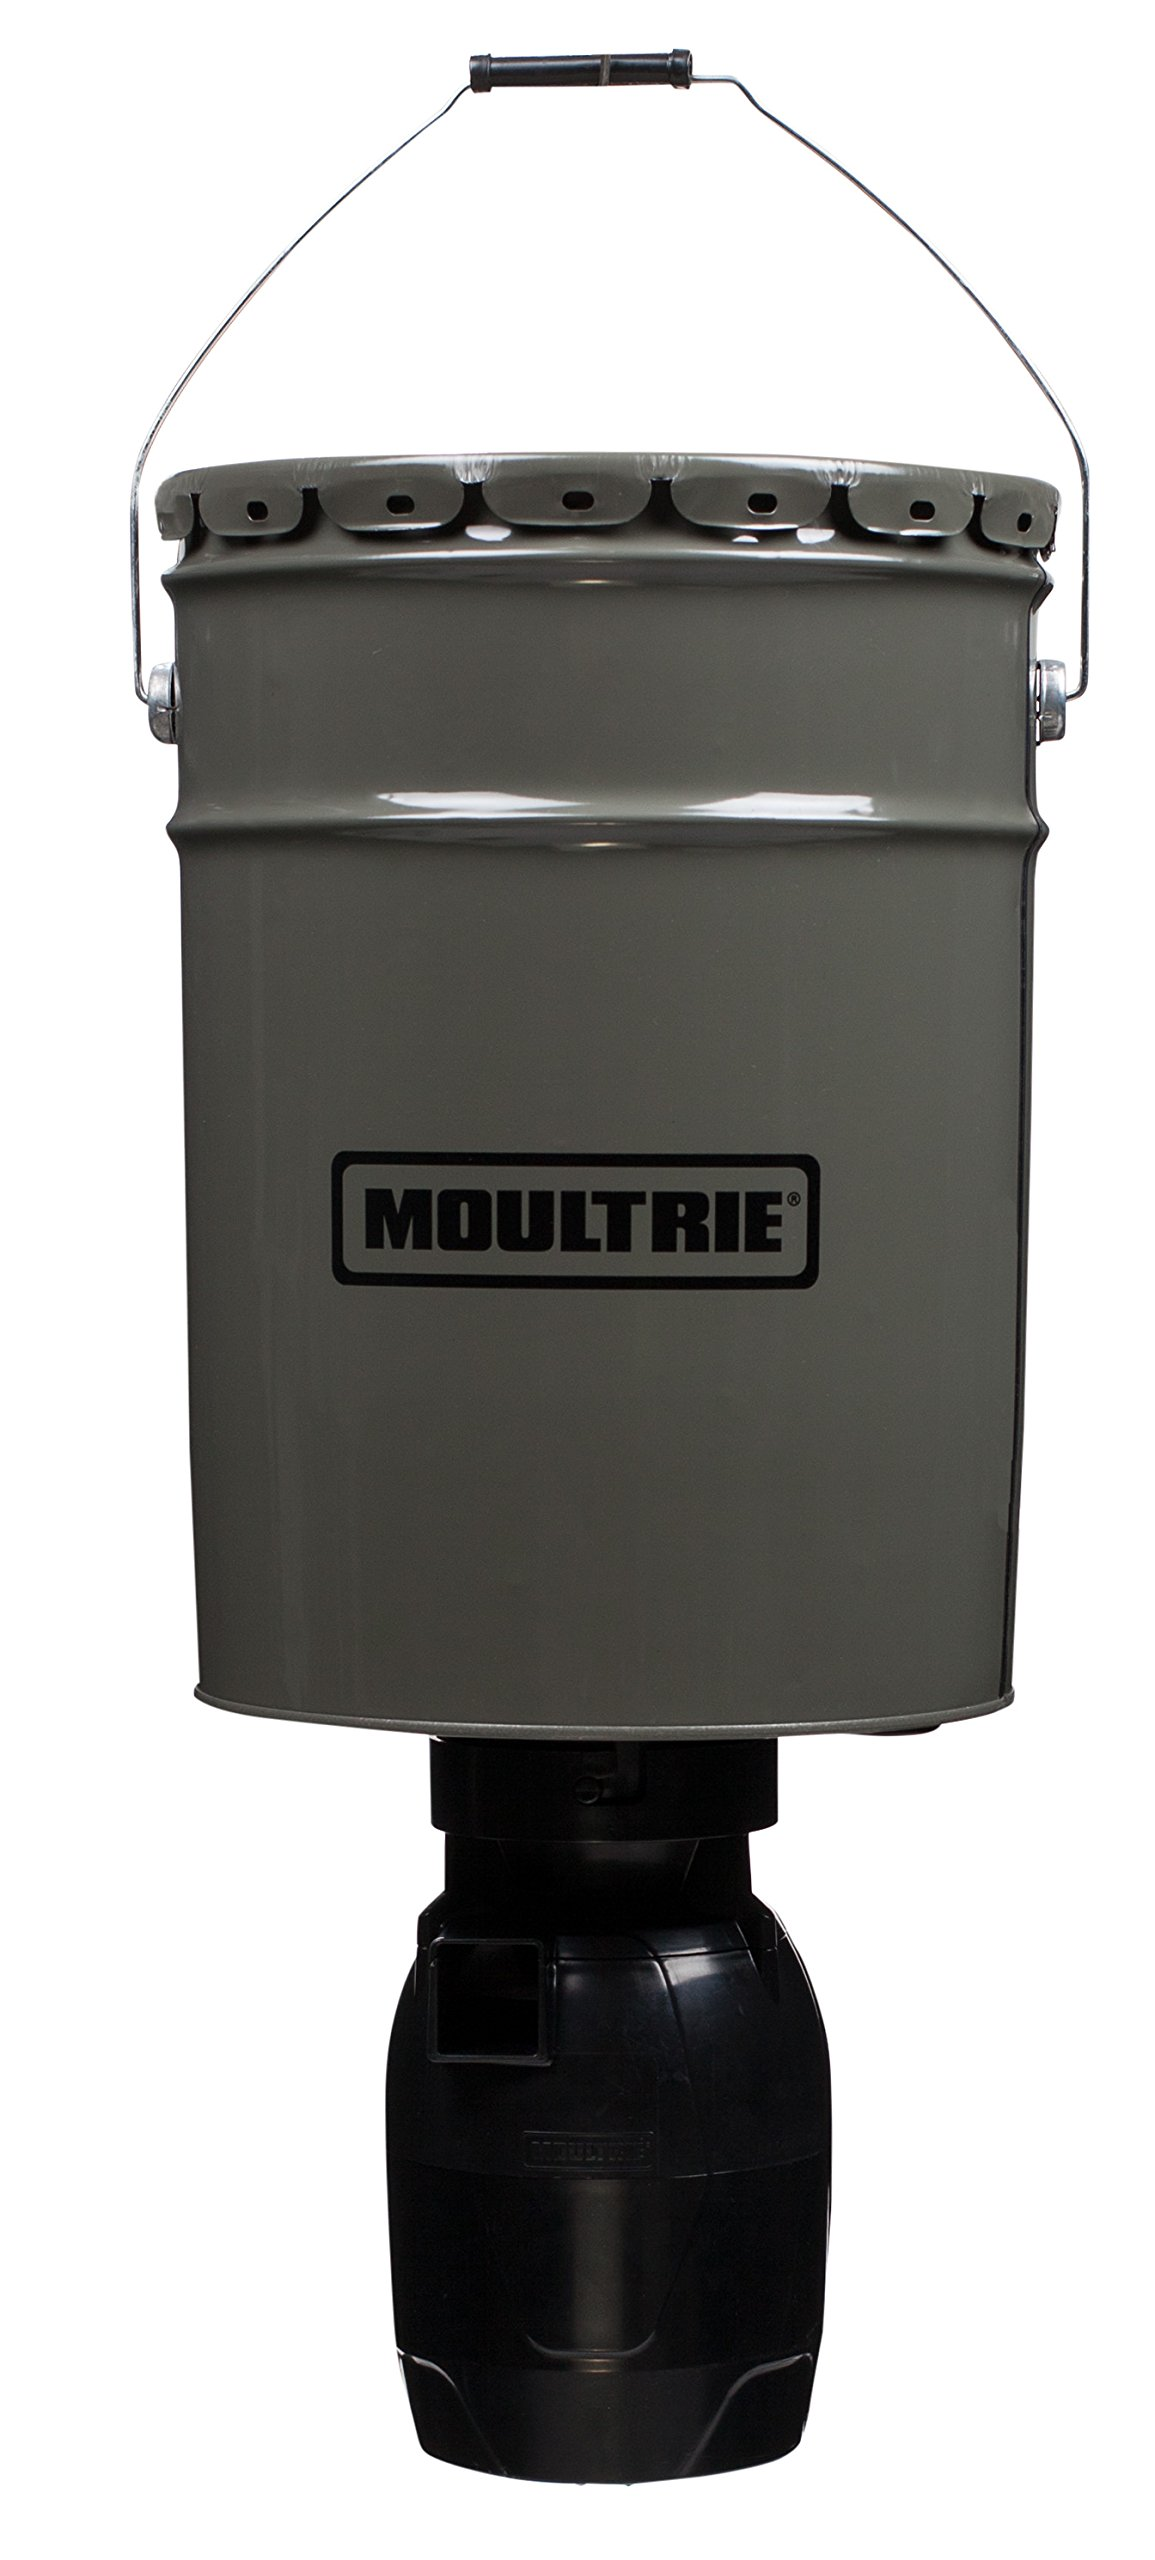 Moultrie MFG-13282 6.5 Gallon Directional Hanging Feeder by Moultrie